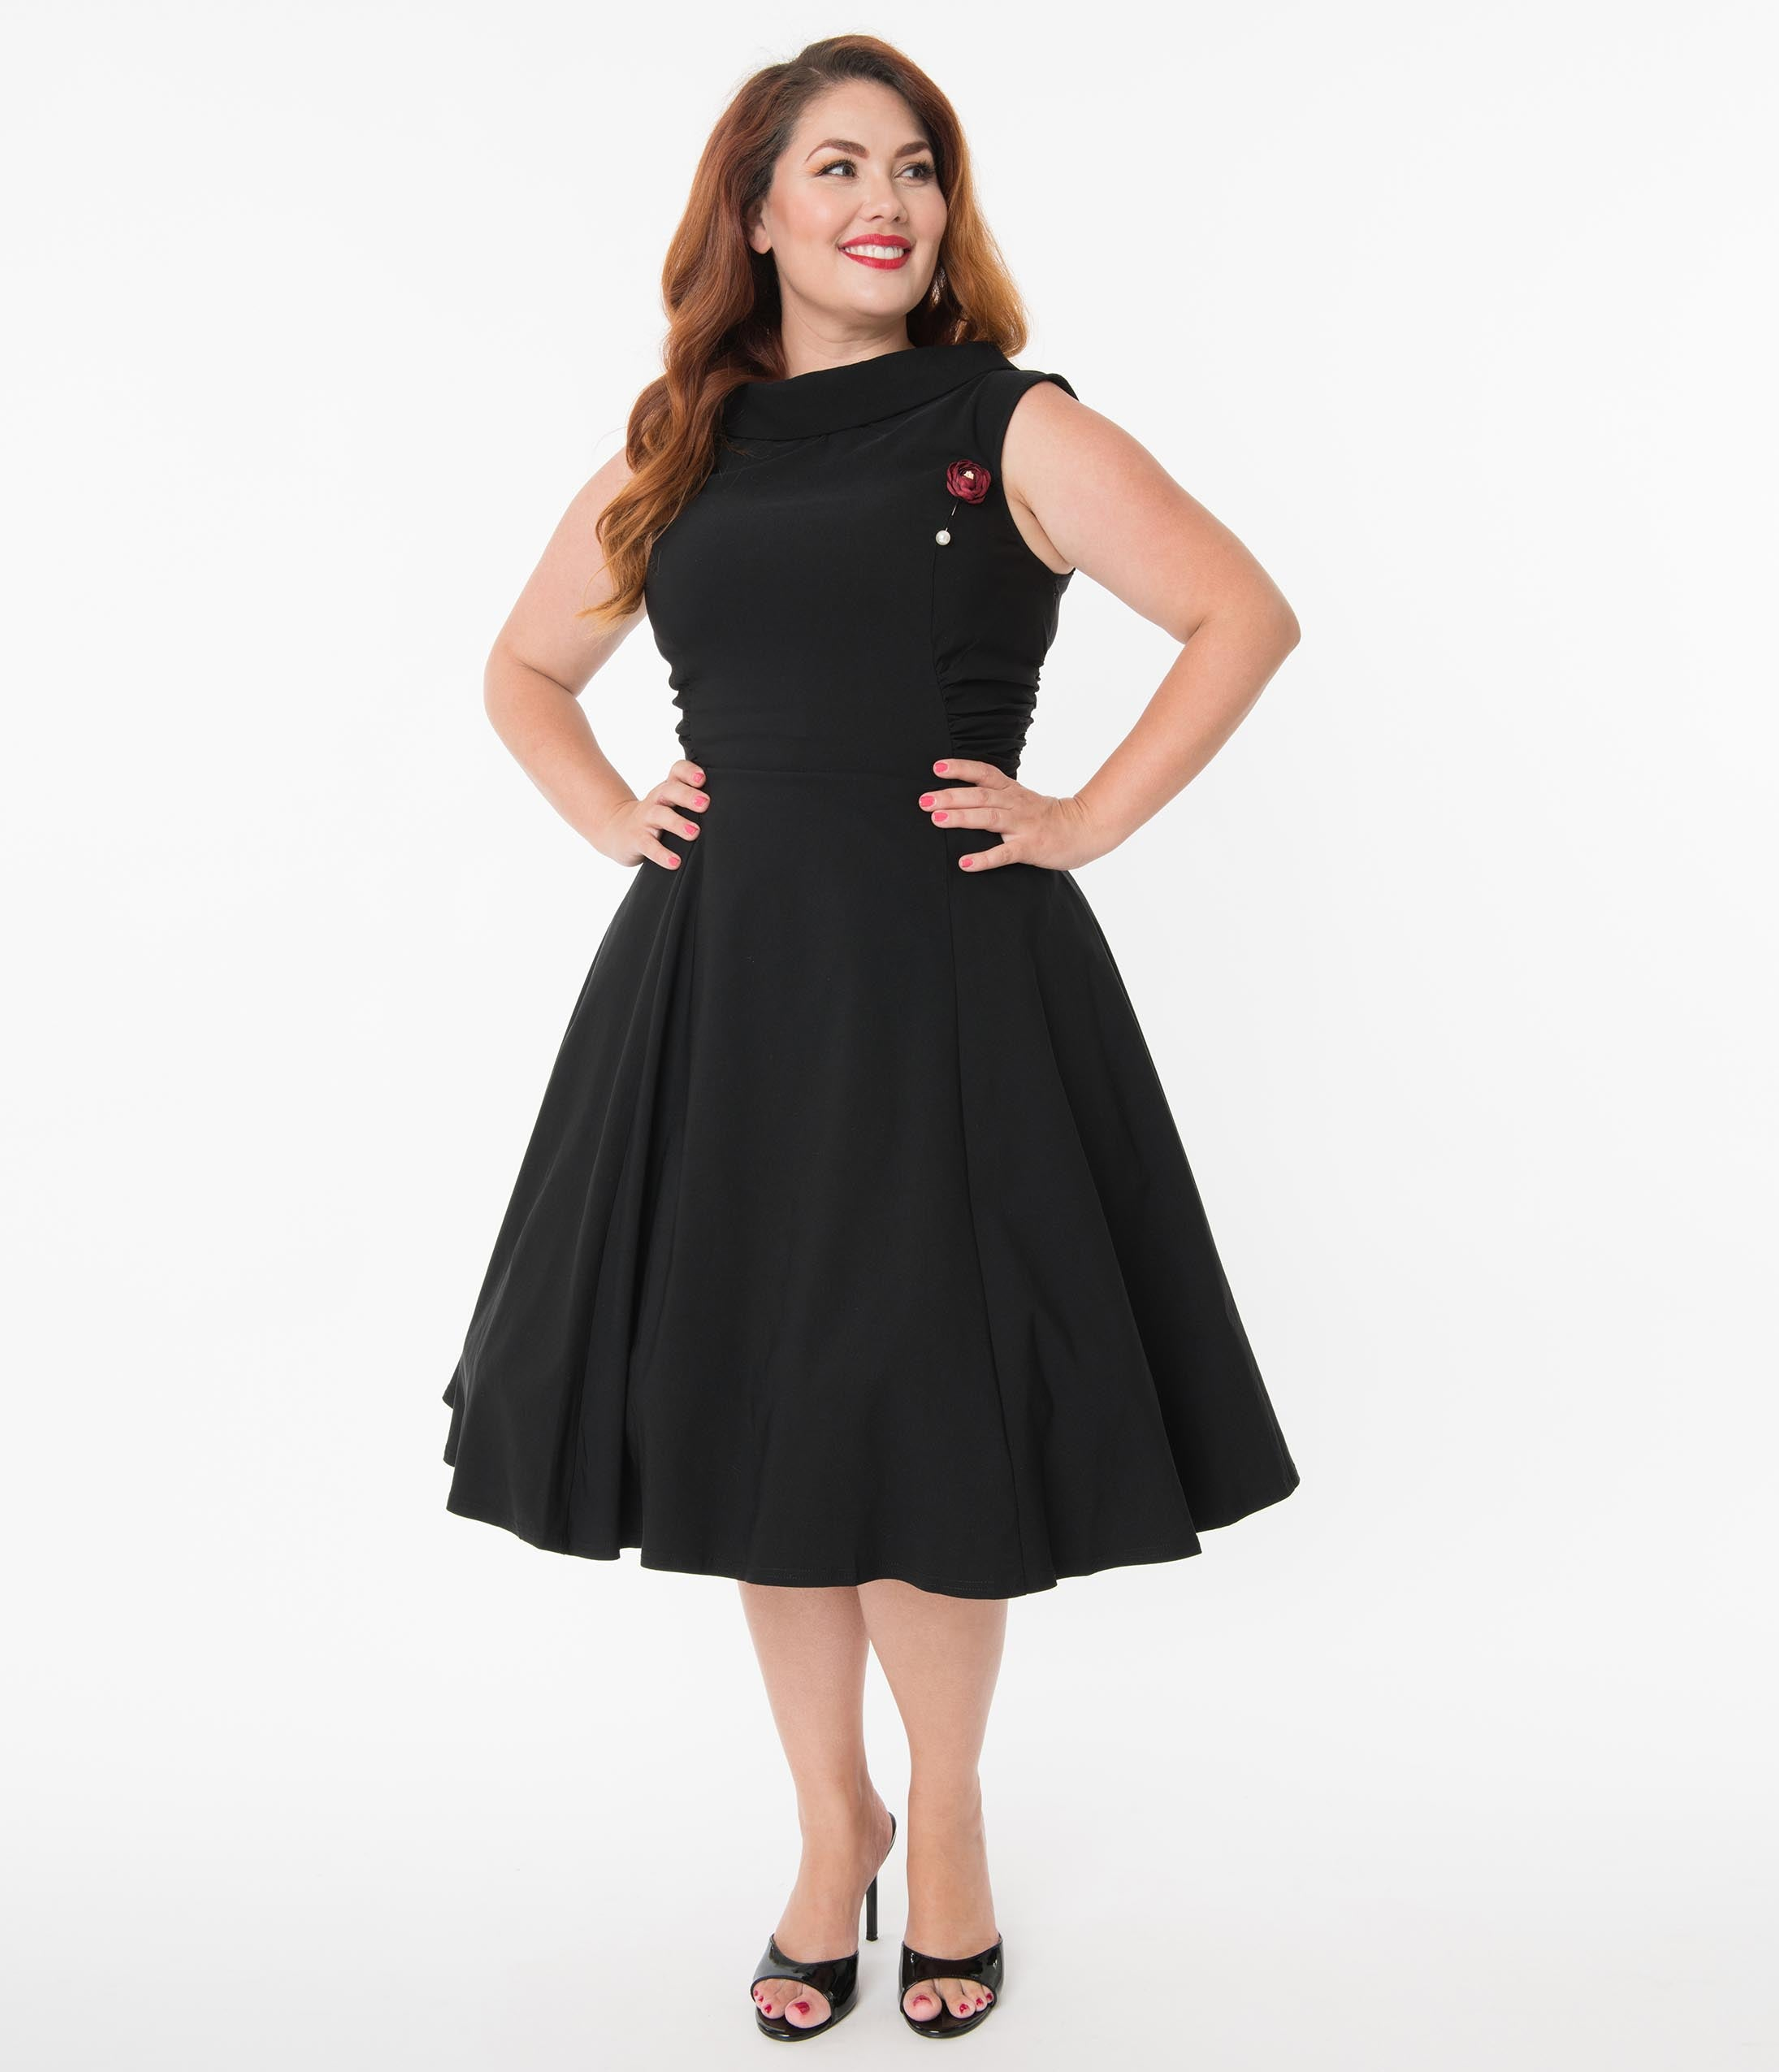 60s 70s Plus Size Dresses, Clothing, Costumes Unique Vintage Plus Size 1950S Black Eliza Swing Dress $78.00 AT vintagedancer.com